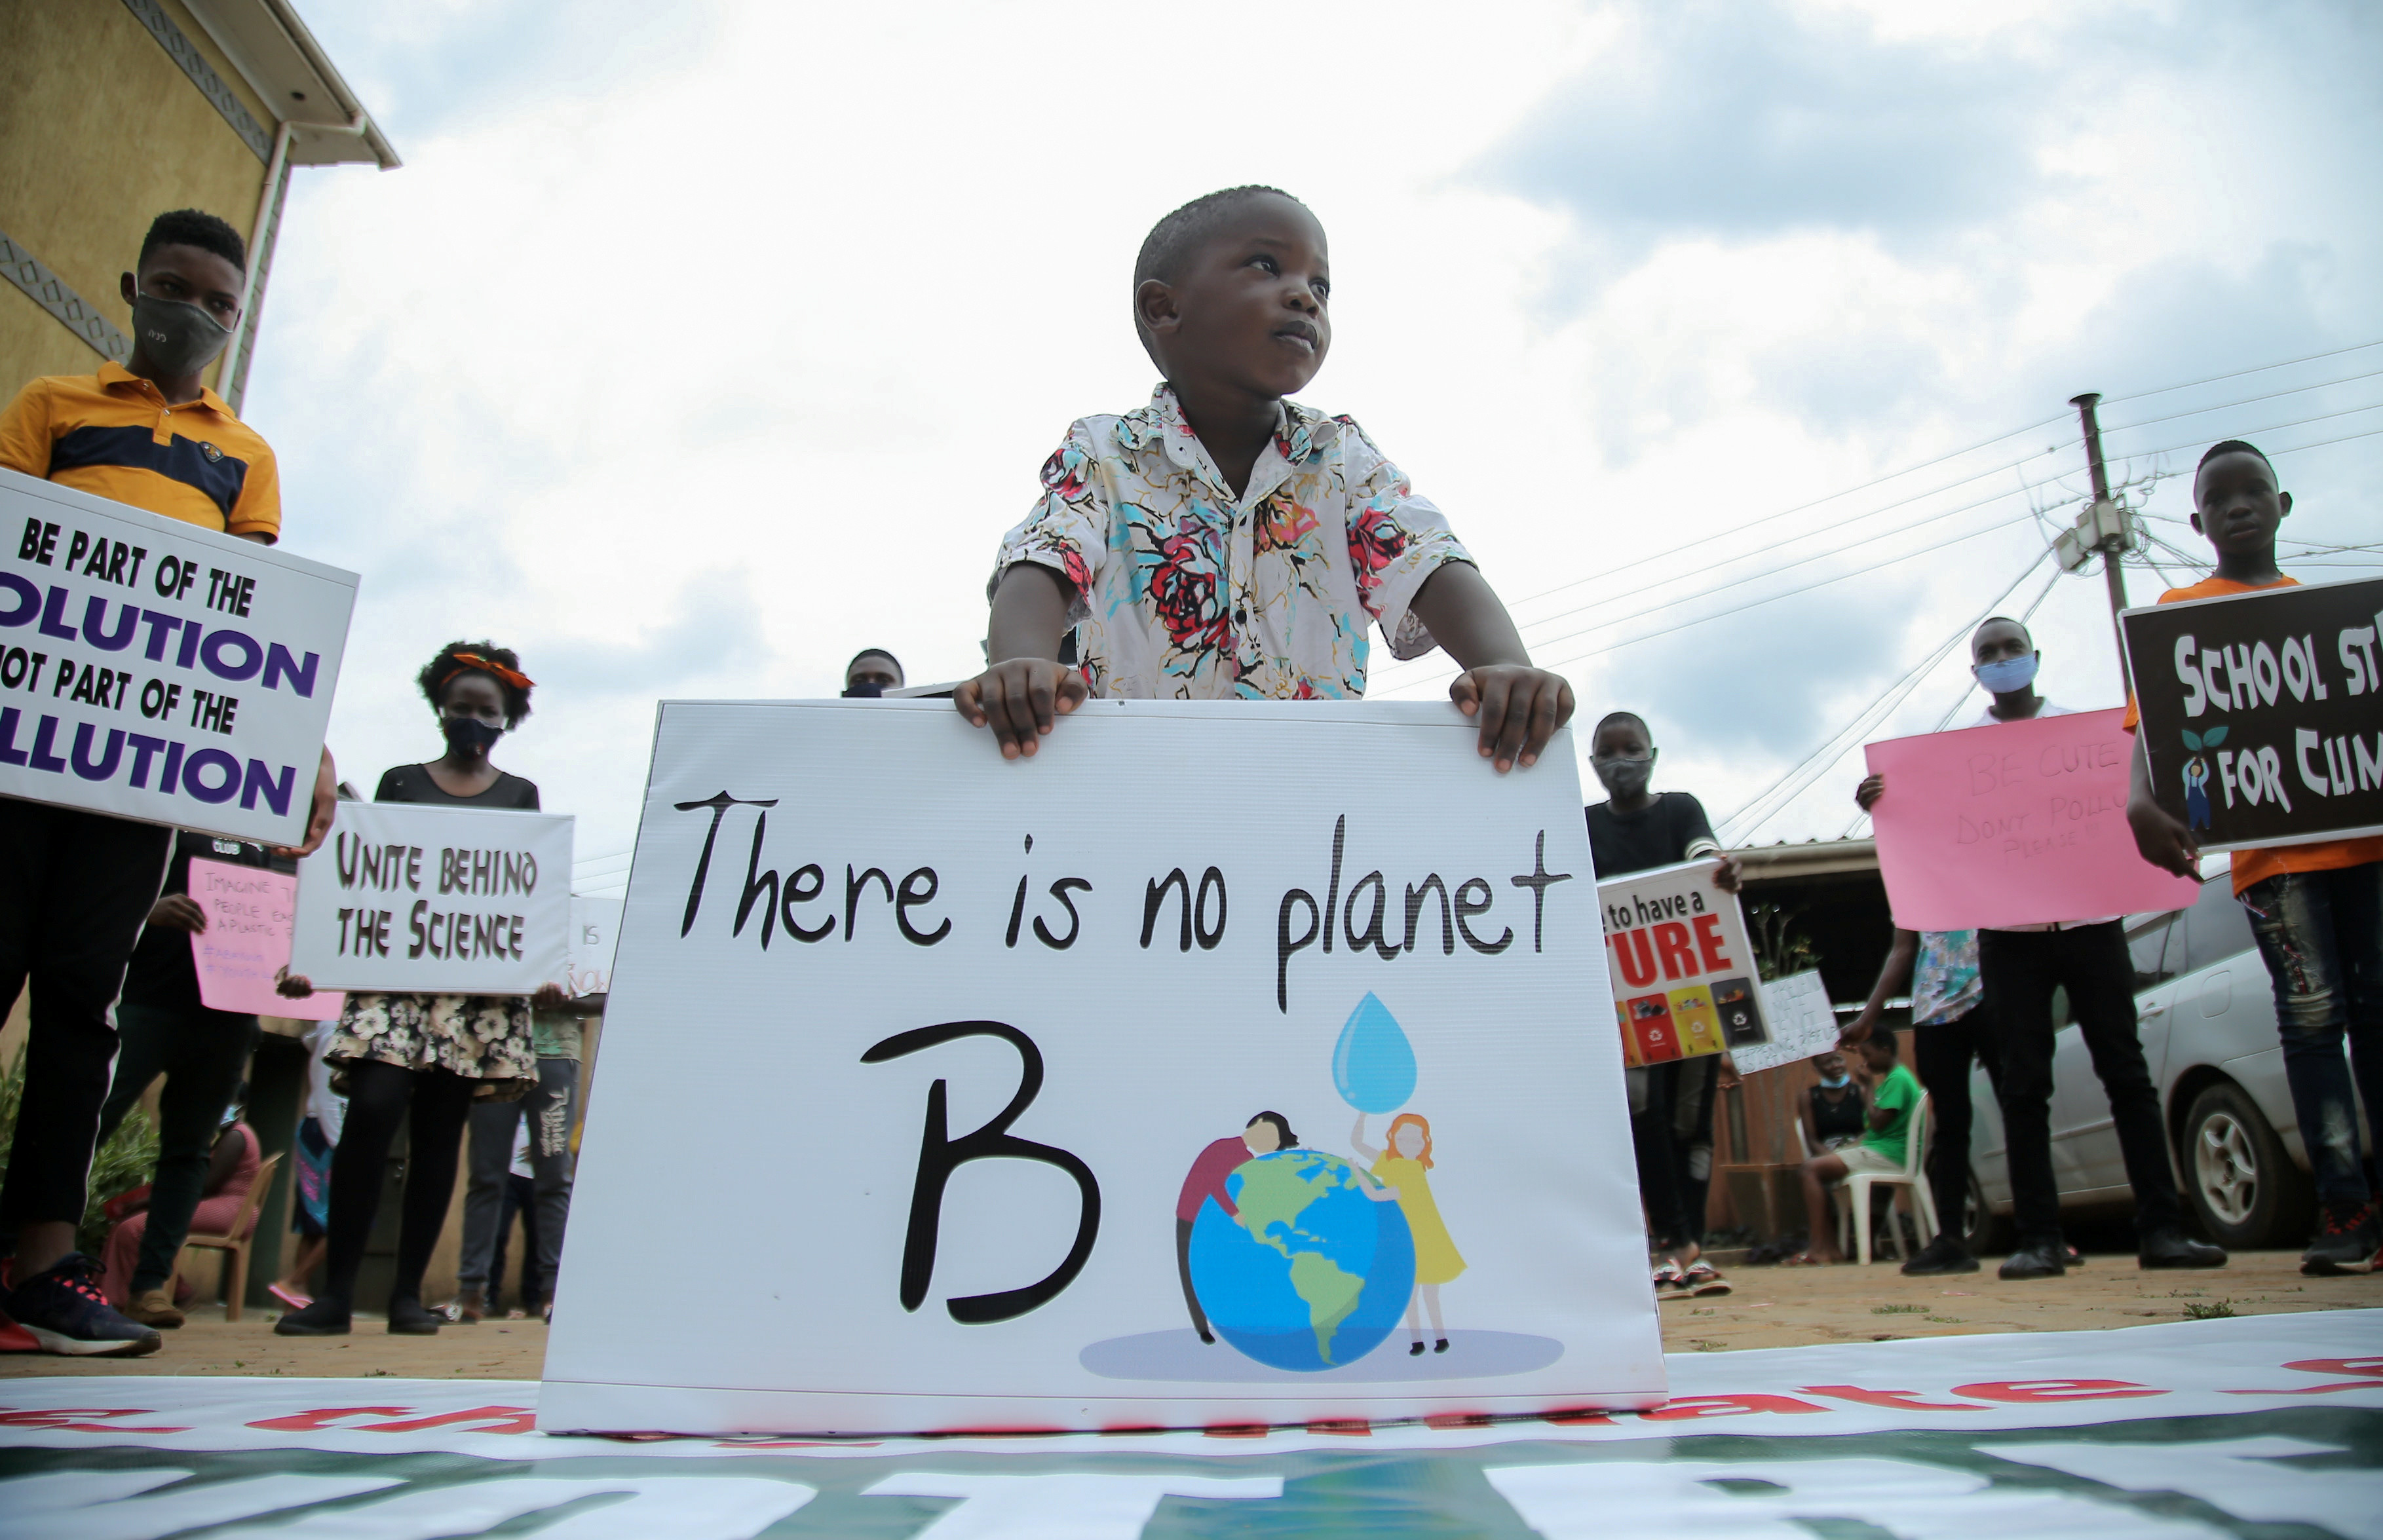 A child stands among Ugandan climate change activists holding placards advocating for climate change as they stand in a formation during a demonstration for the Global Climate Change in Luzira suburb of Kampala, Uganda, September 25, 2020. REUTERS/Abubaker Lubowa - RC2Q5J9EWCKT